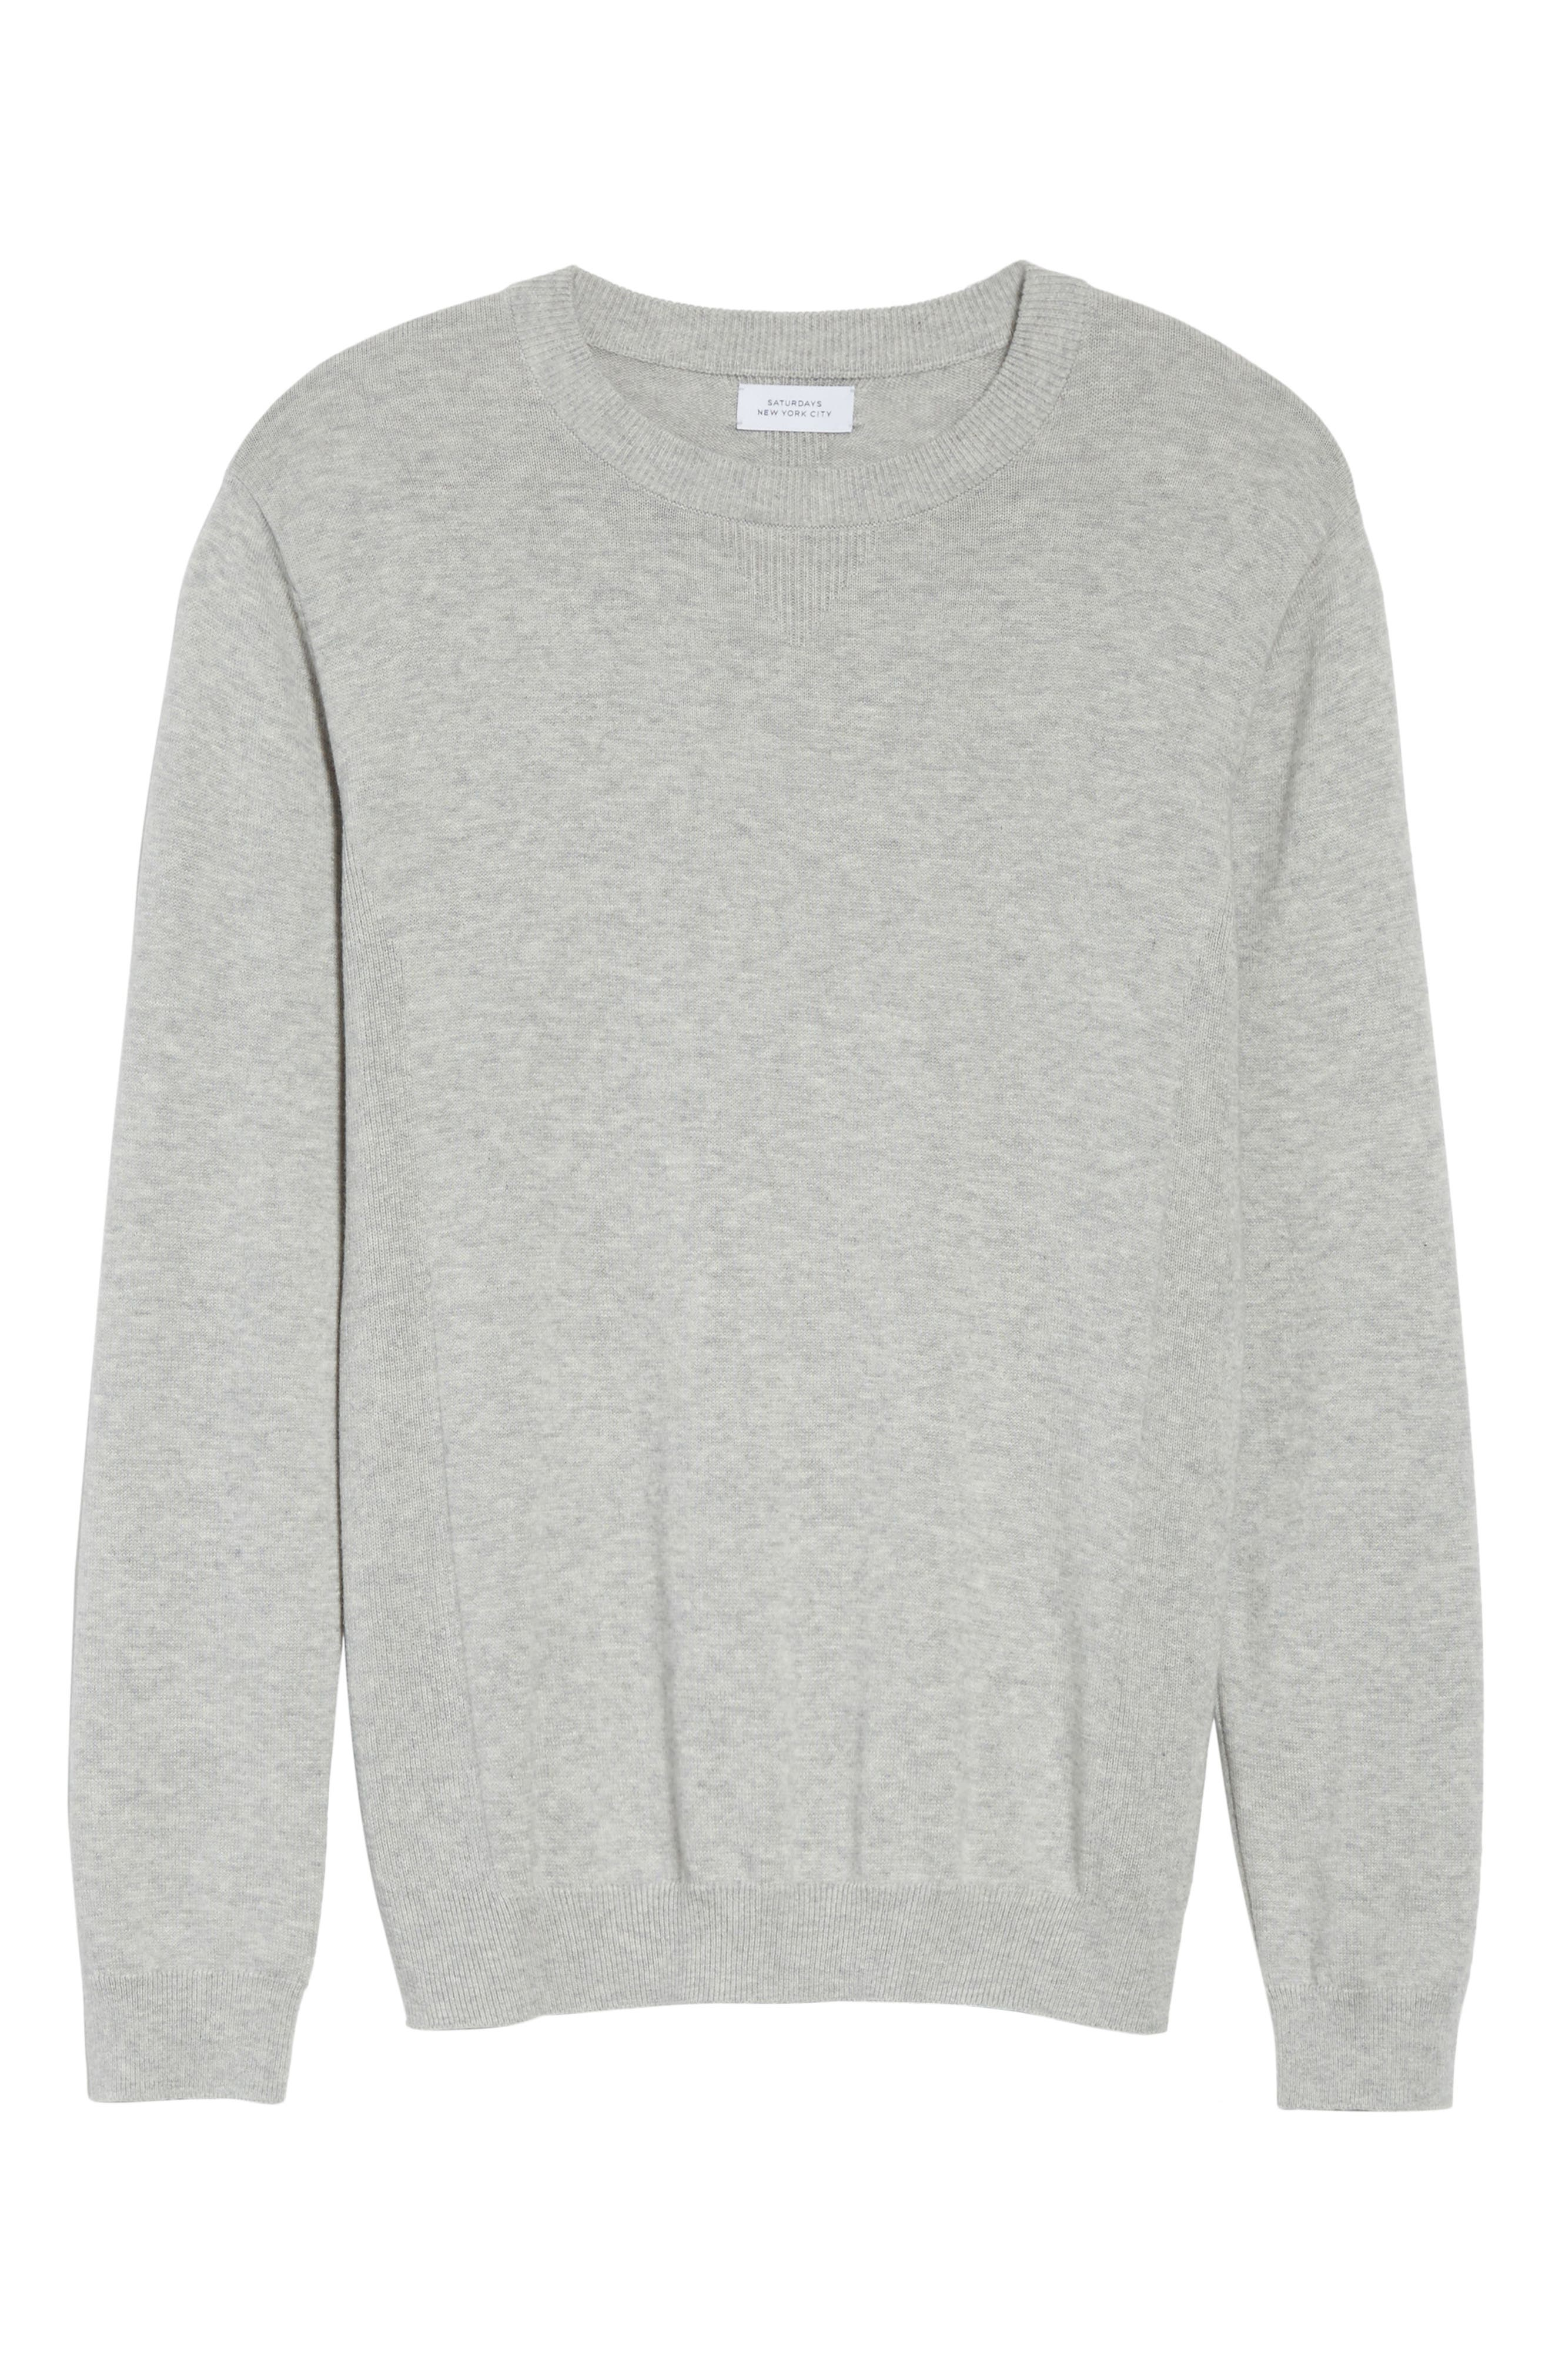 Merino Wool & Cashmere Pullover,                             Alternate thumbnail 6, color,                             Ash Heather